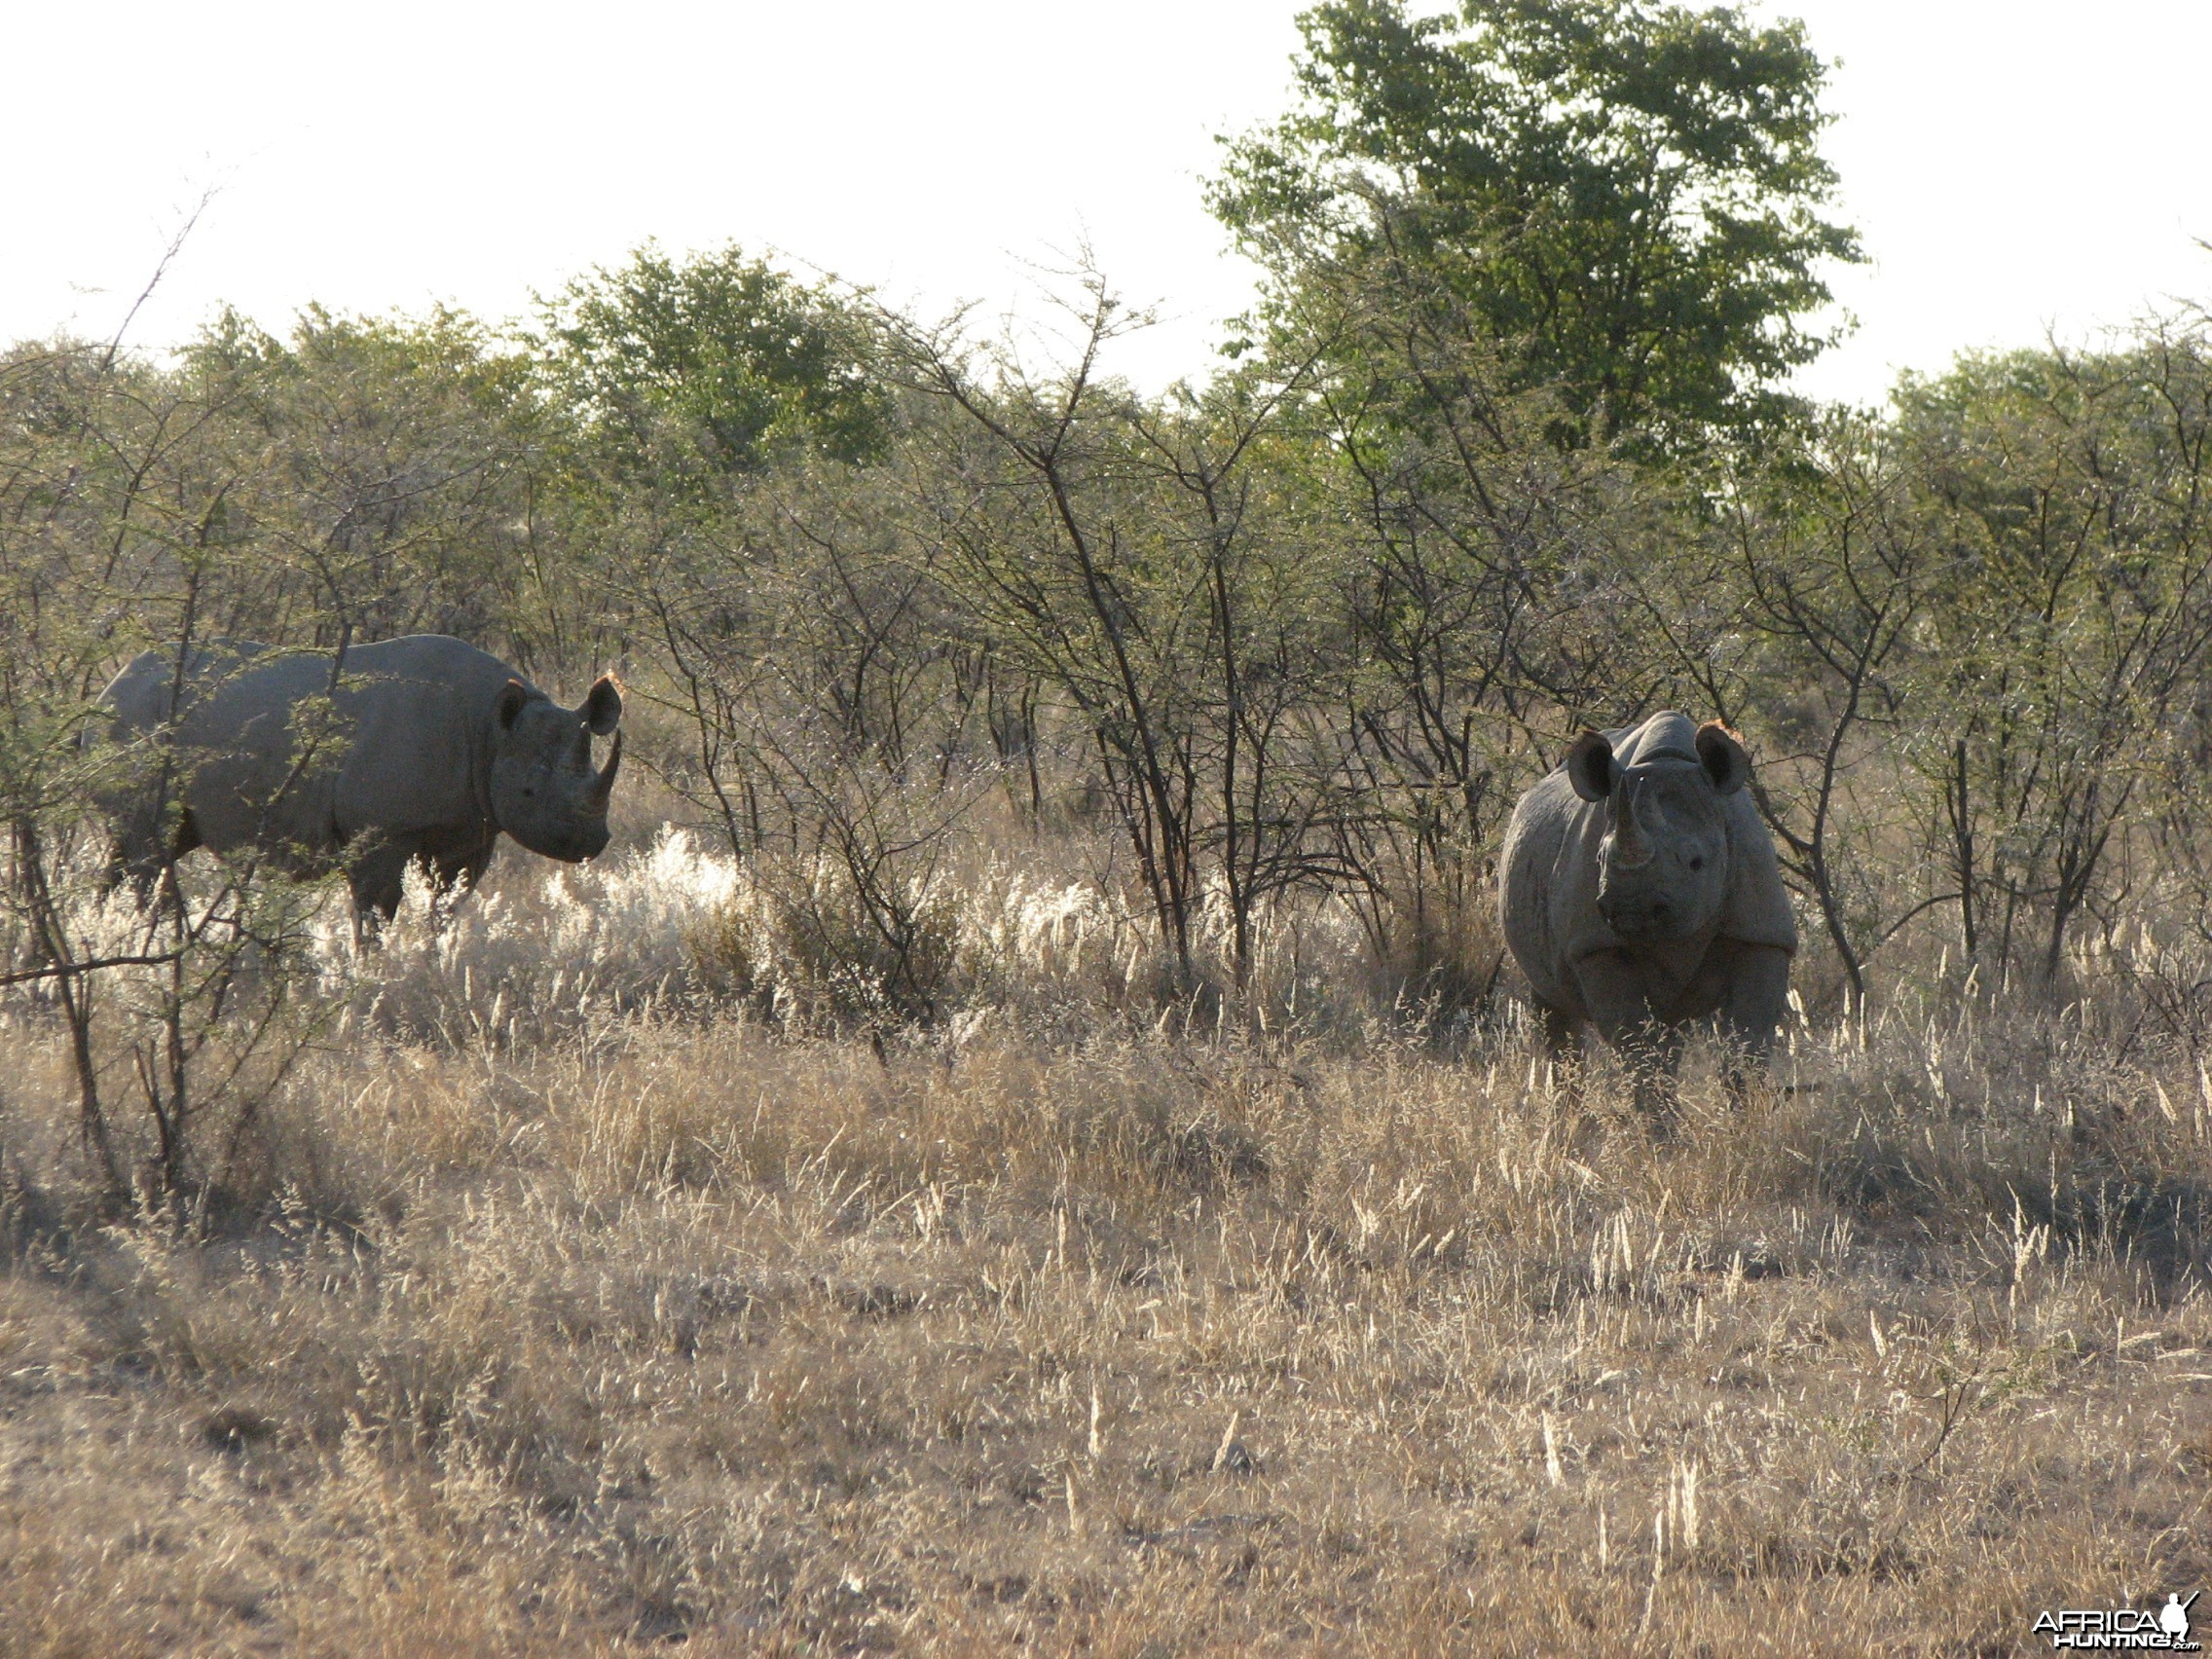 Black Rhinos at Etosha National Park, Namibia